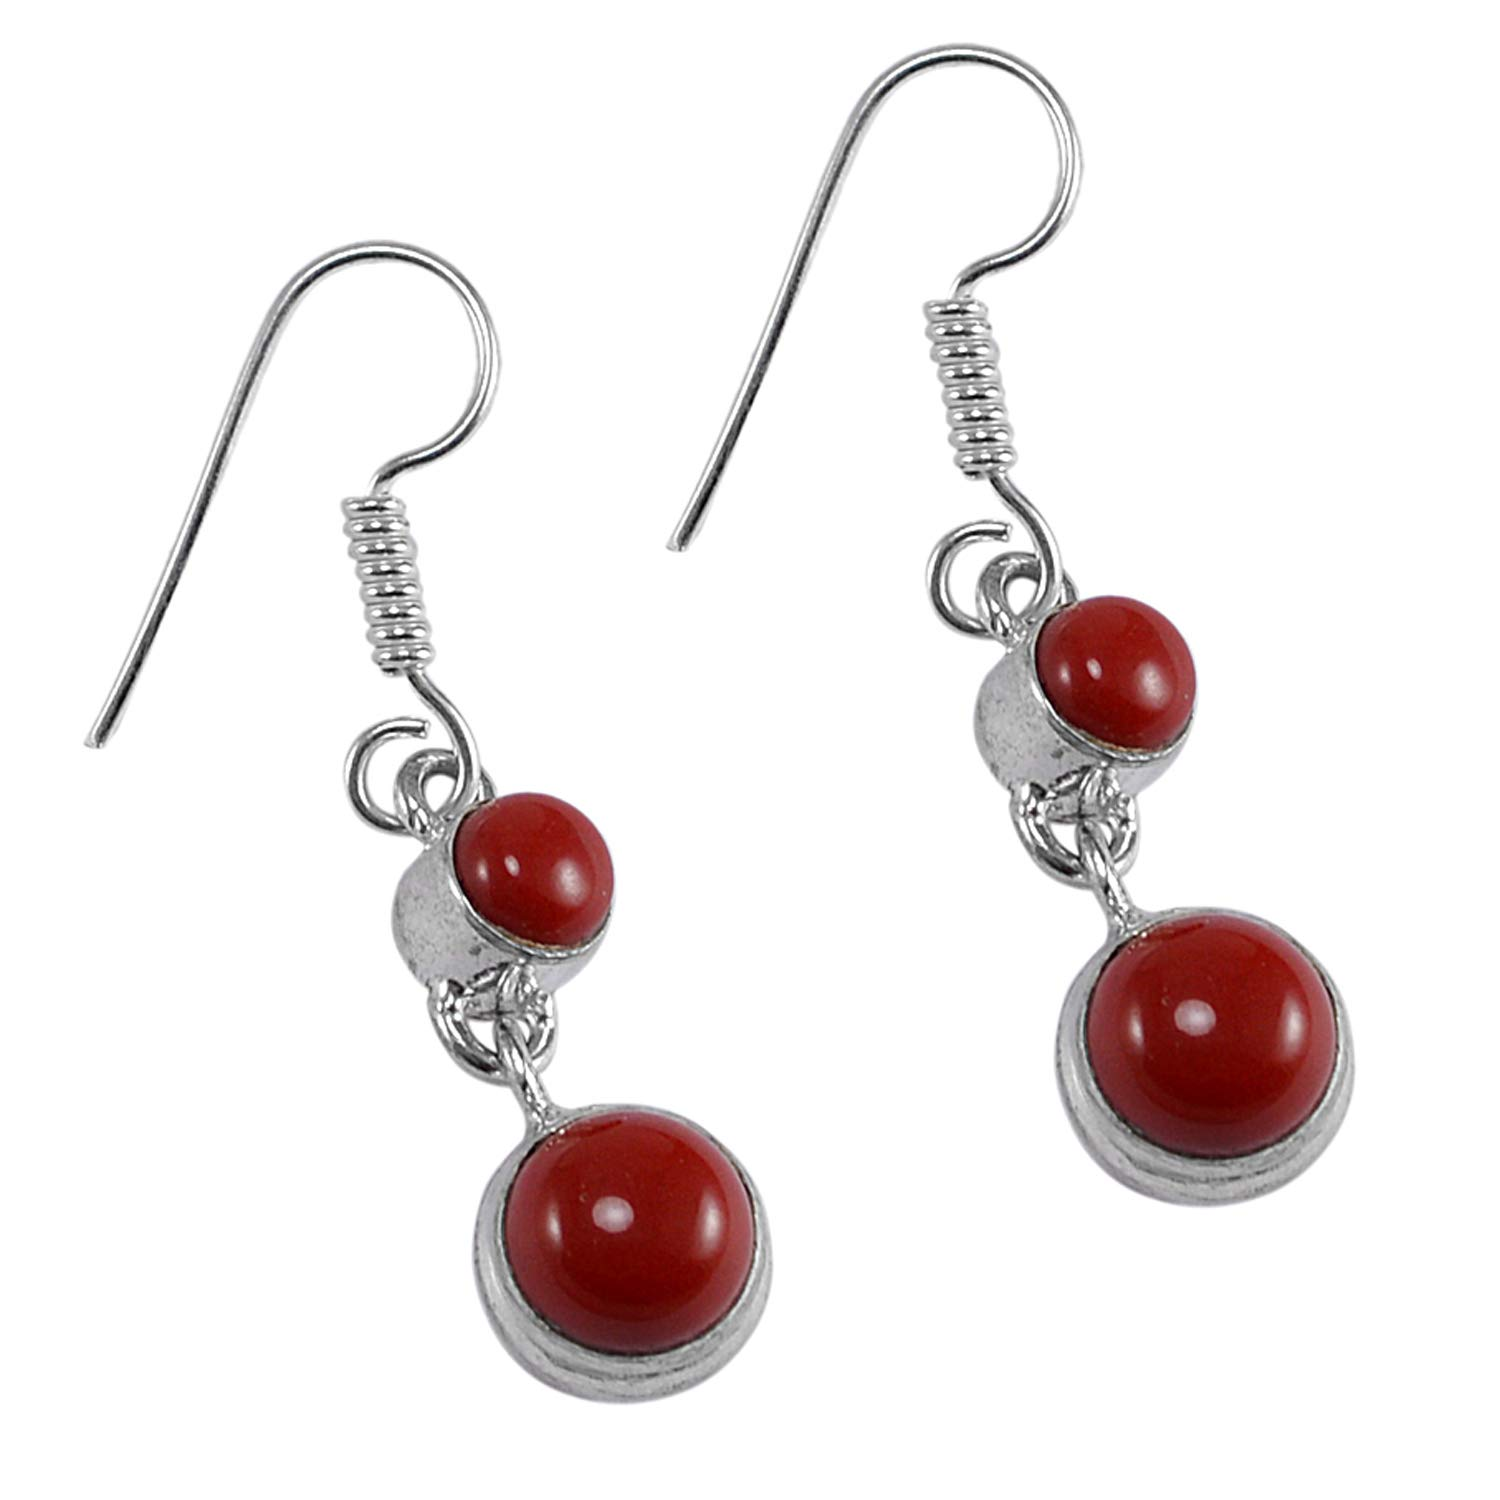 Silvestoo Jaipur Red Coral Gemstone 925 Silver Plated Earring Jewelry PG-127358